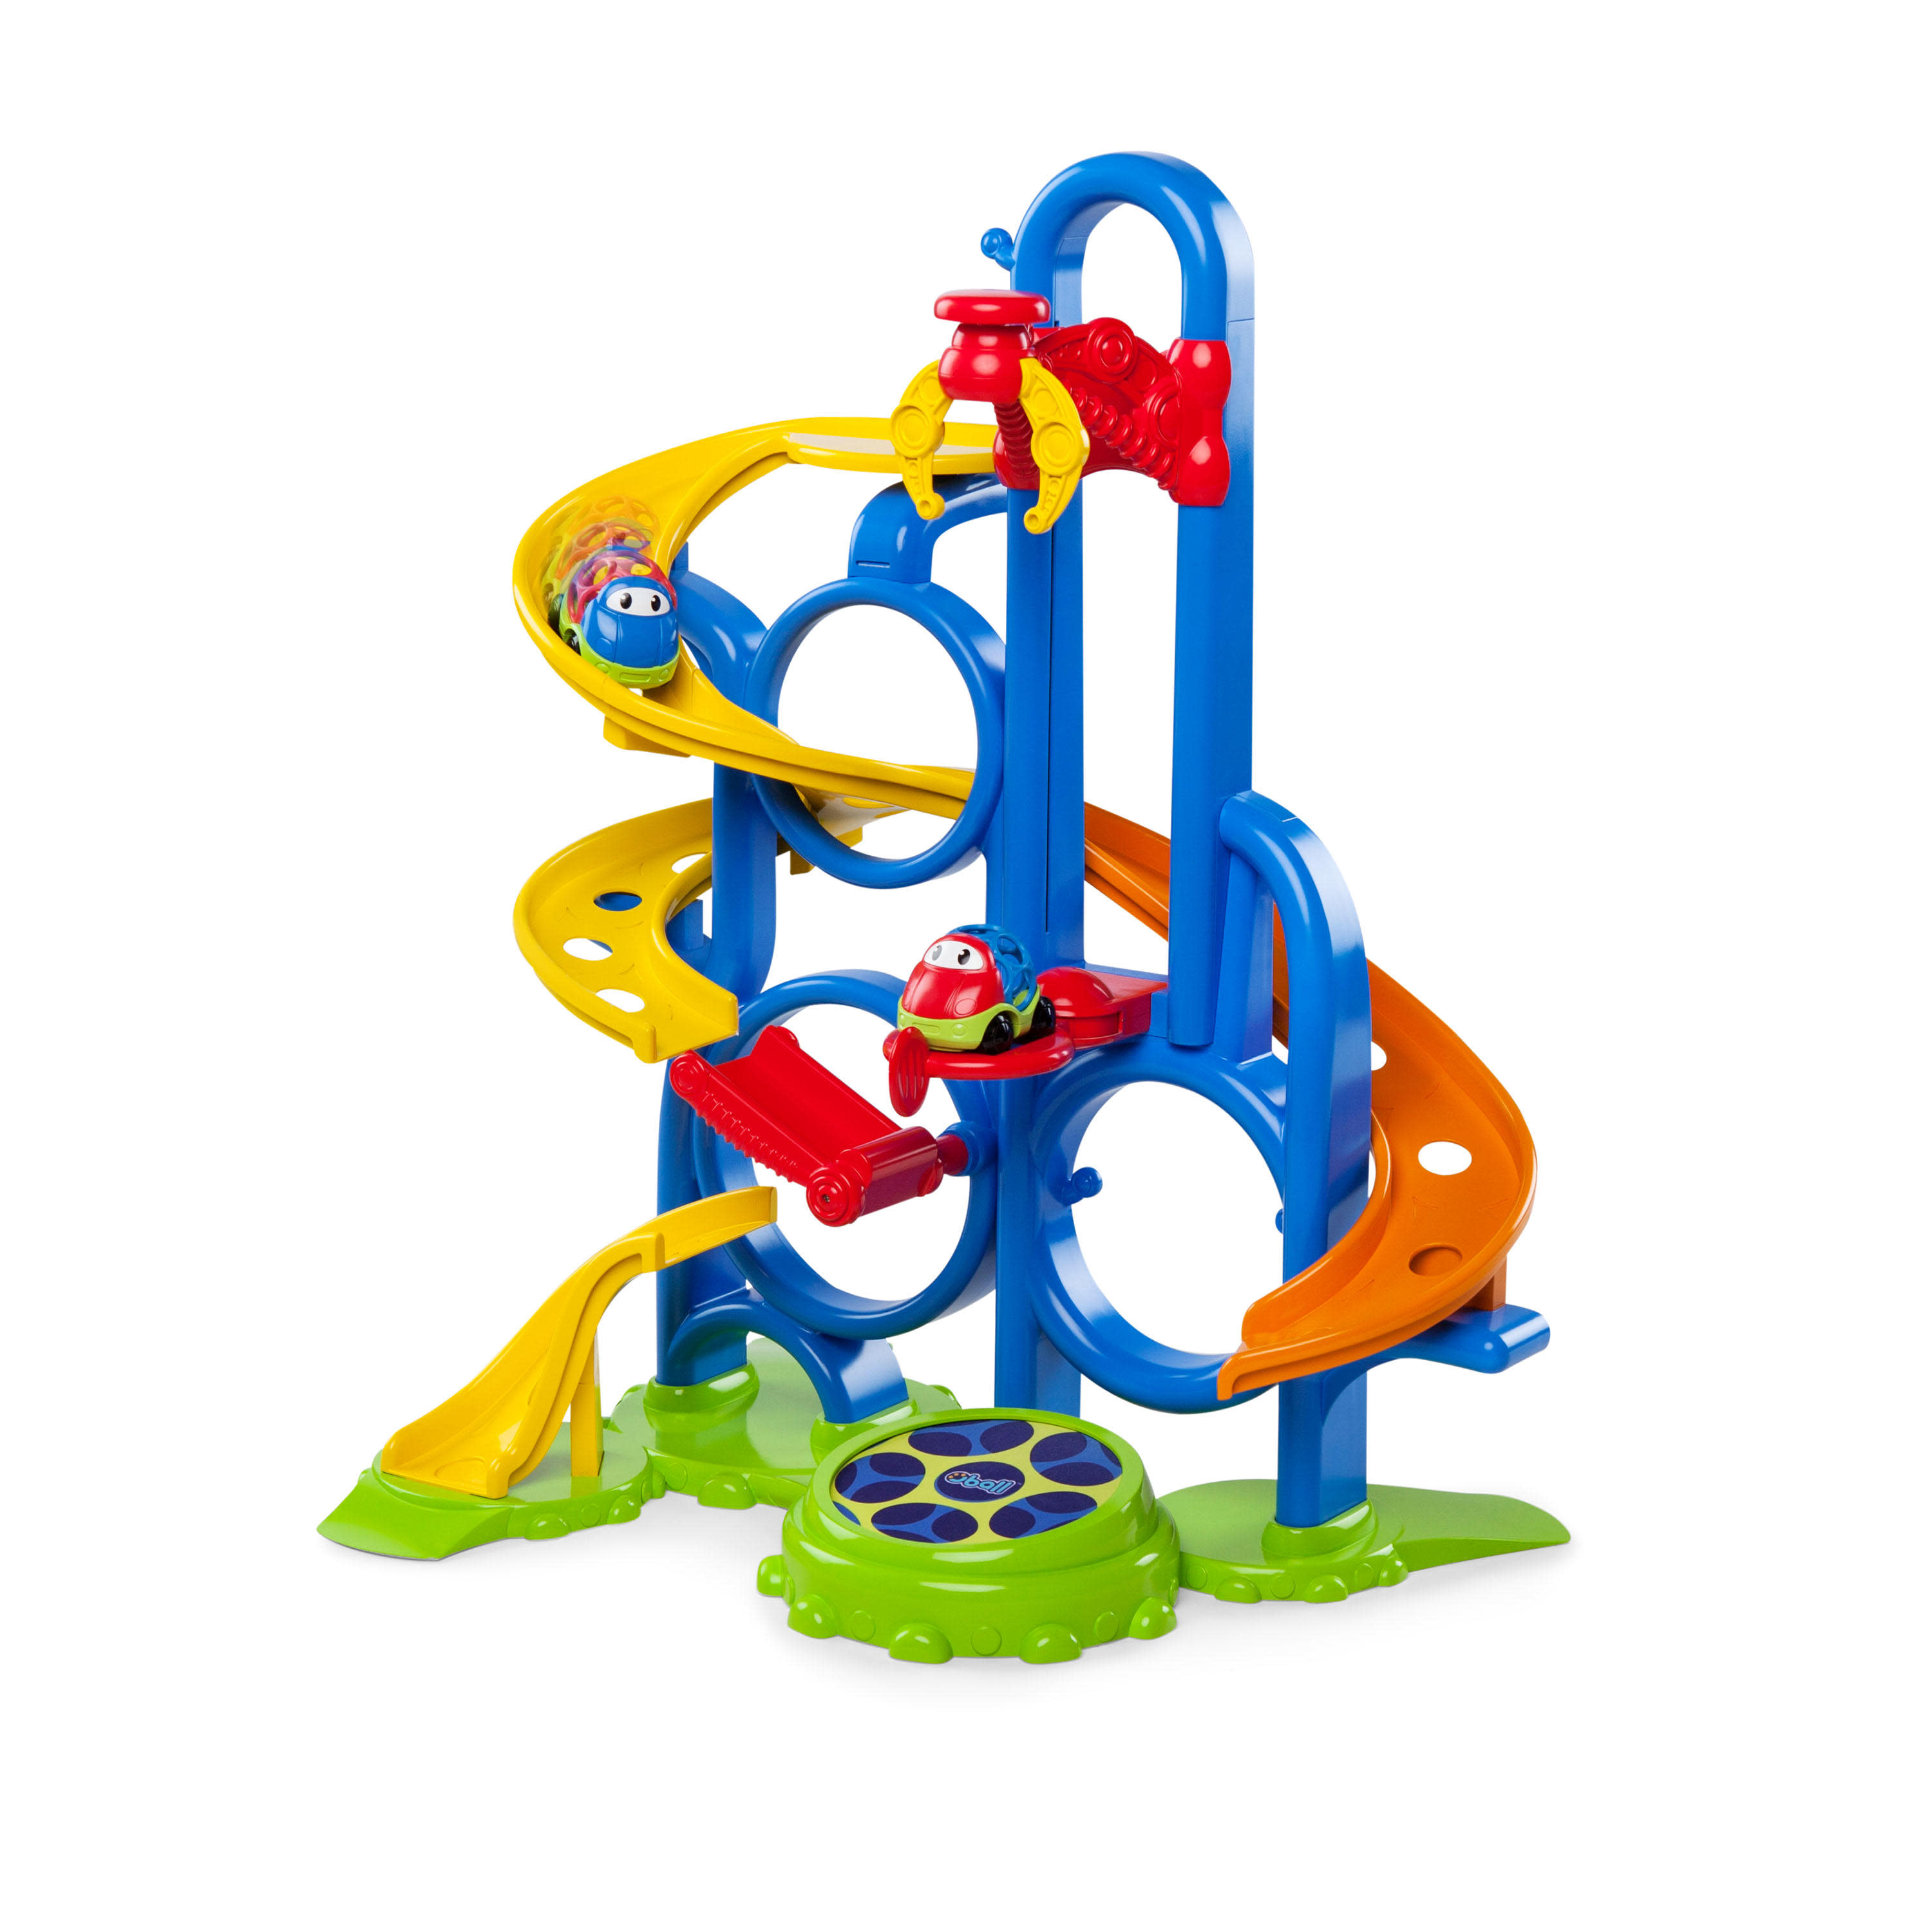 Oball Go Grippers Bounce 'N Zoom Speedway Track Play Set